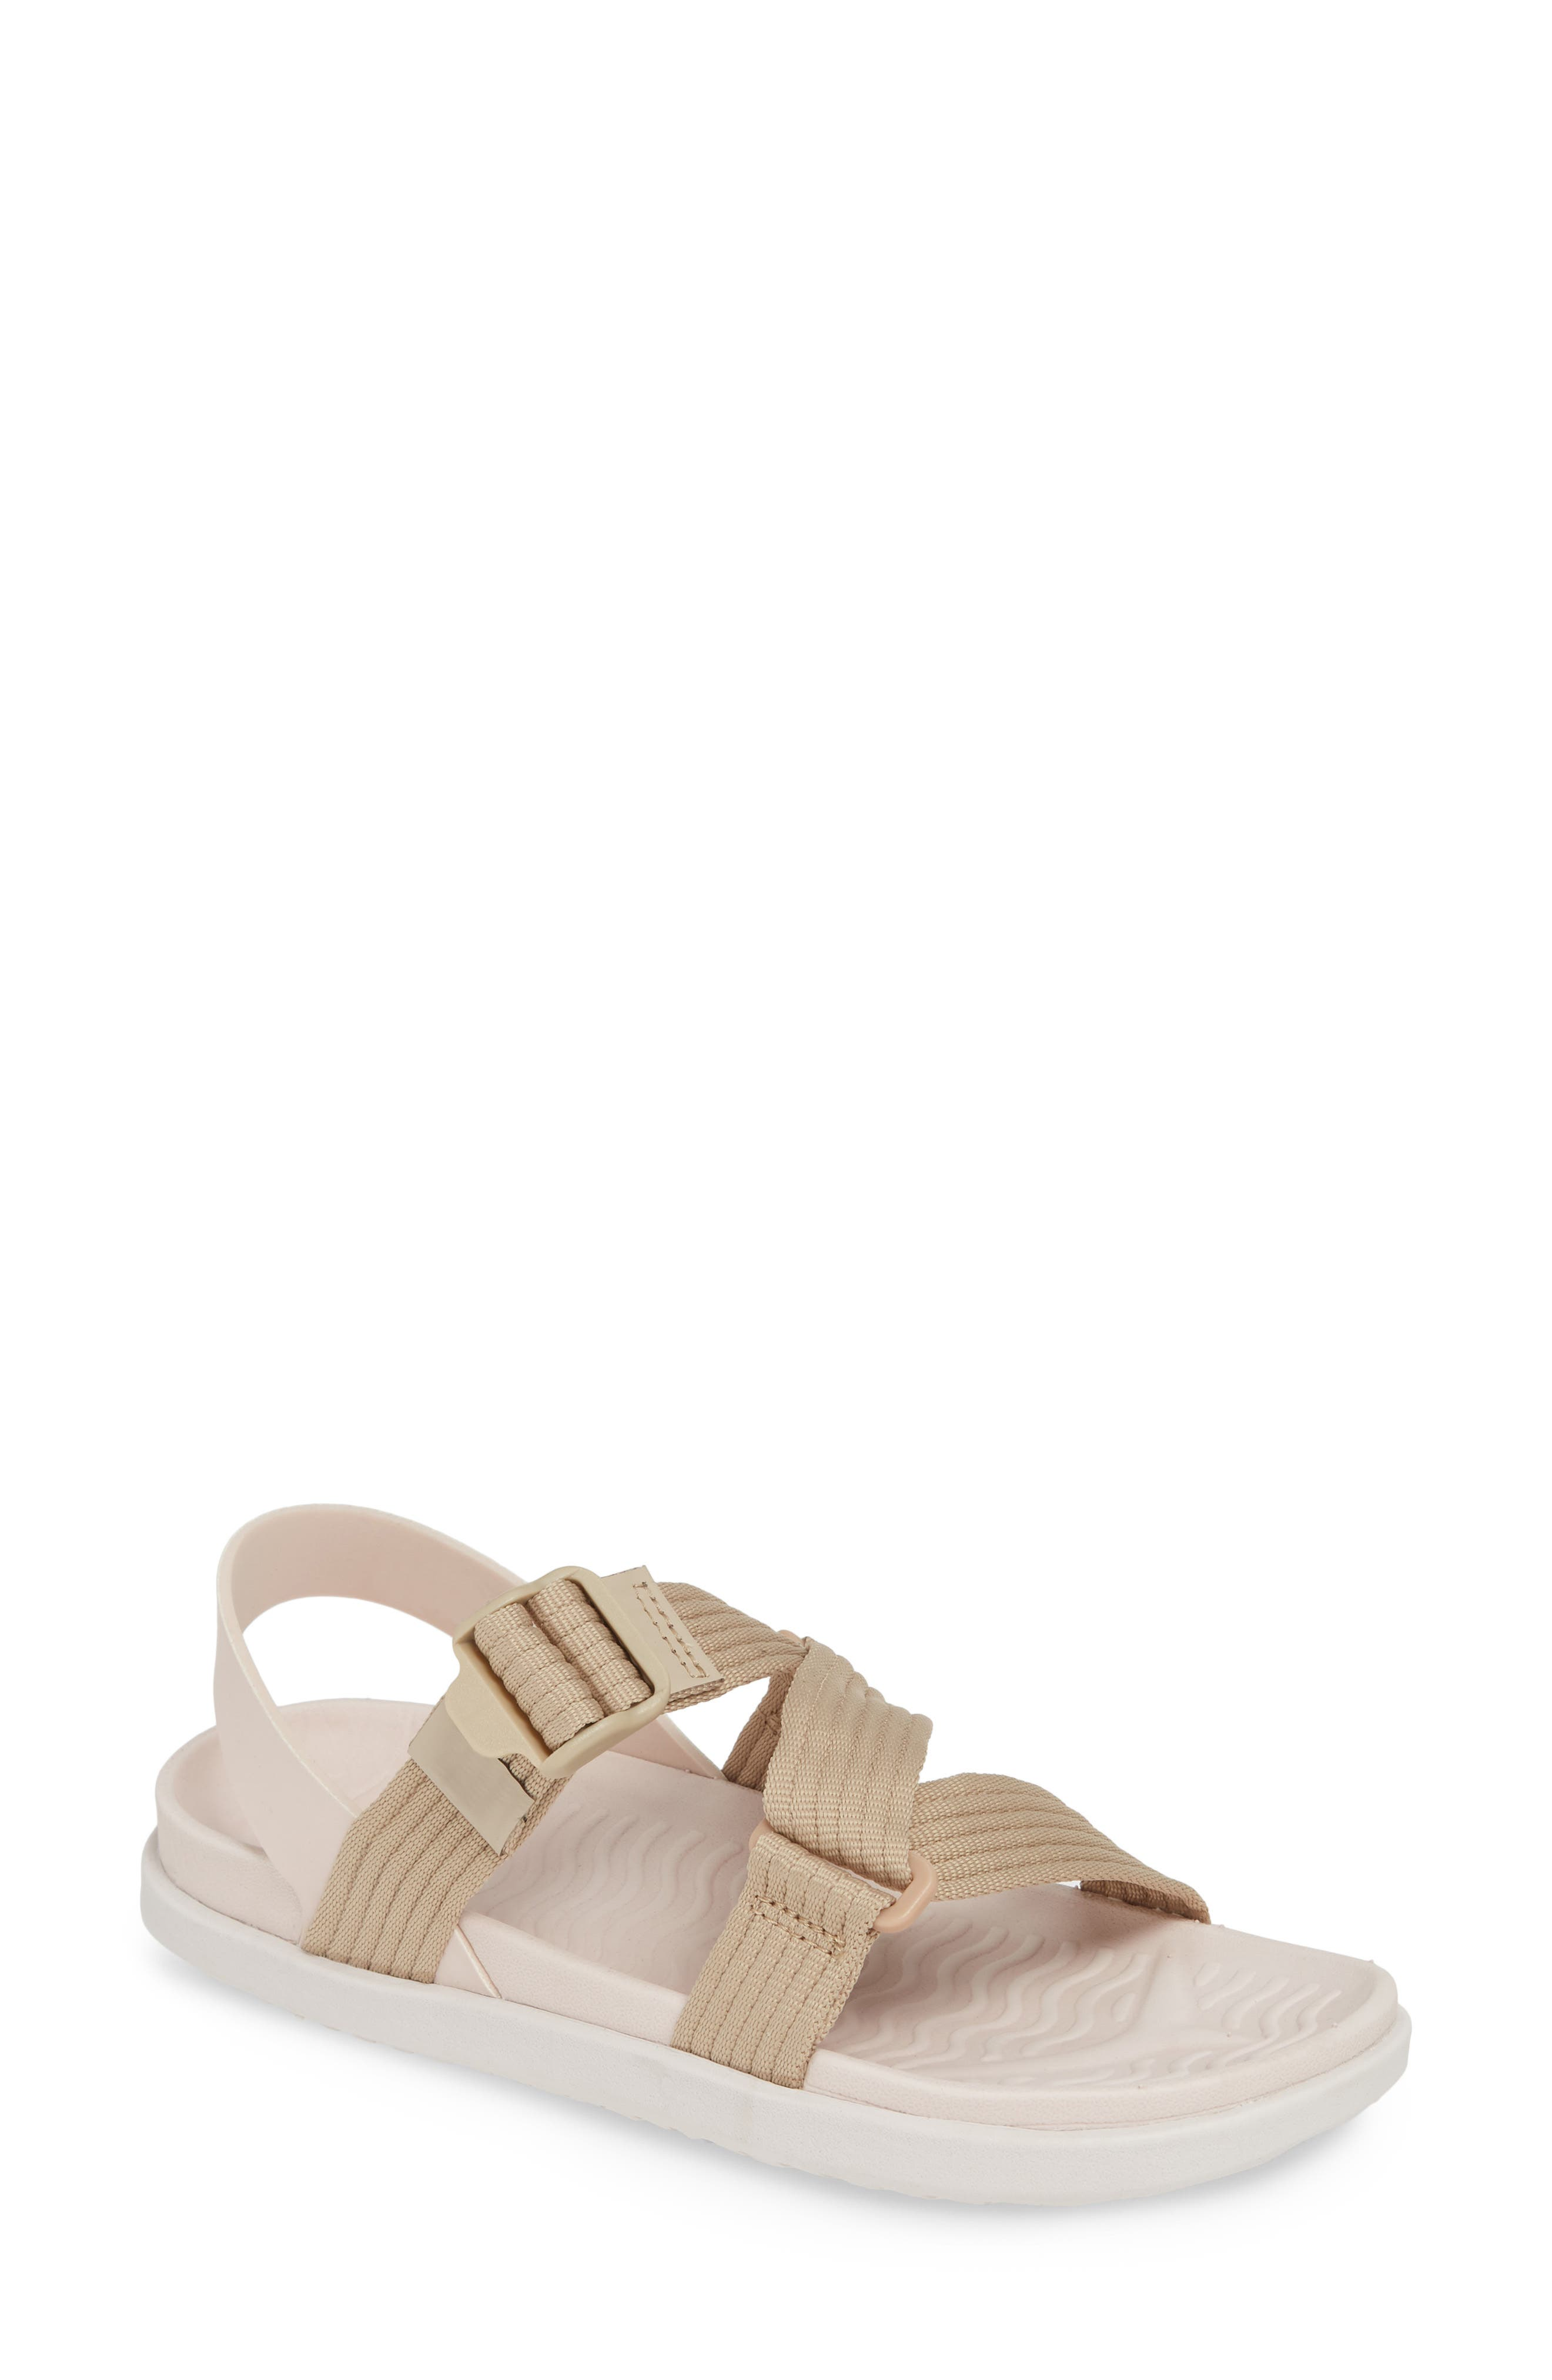 Native Shoes Zurich Vegan Sandal, Pink